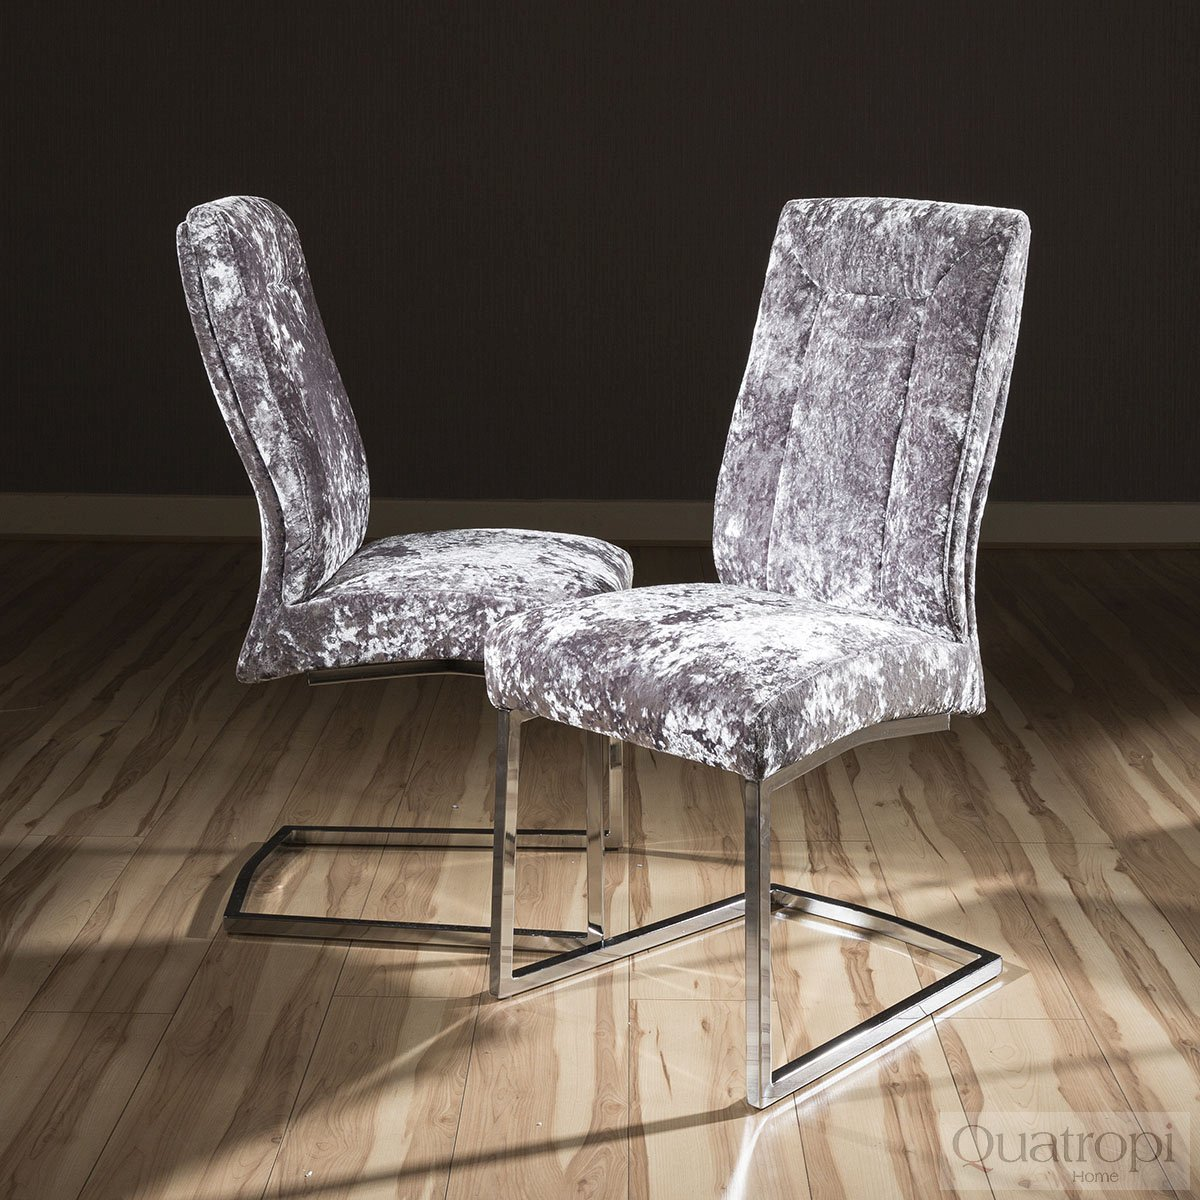 Set of 2 Large Super Comfy Modern Dining Chairs Silver  : JD5110SILVERCRUSHEDVELVETDININGCHAIRMR2 from www.ebay.co.uk size 1200 x 1200 jpeg 287kB